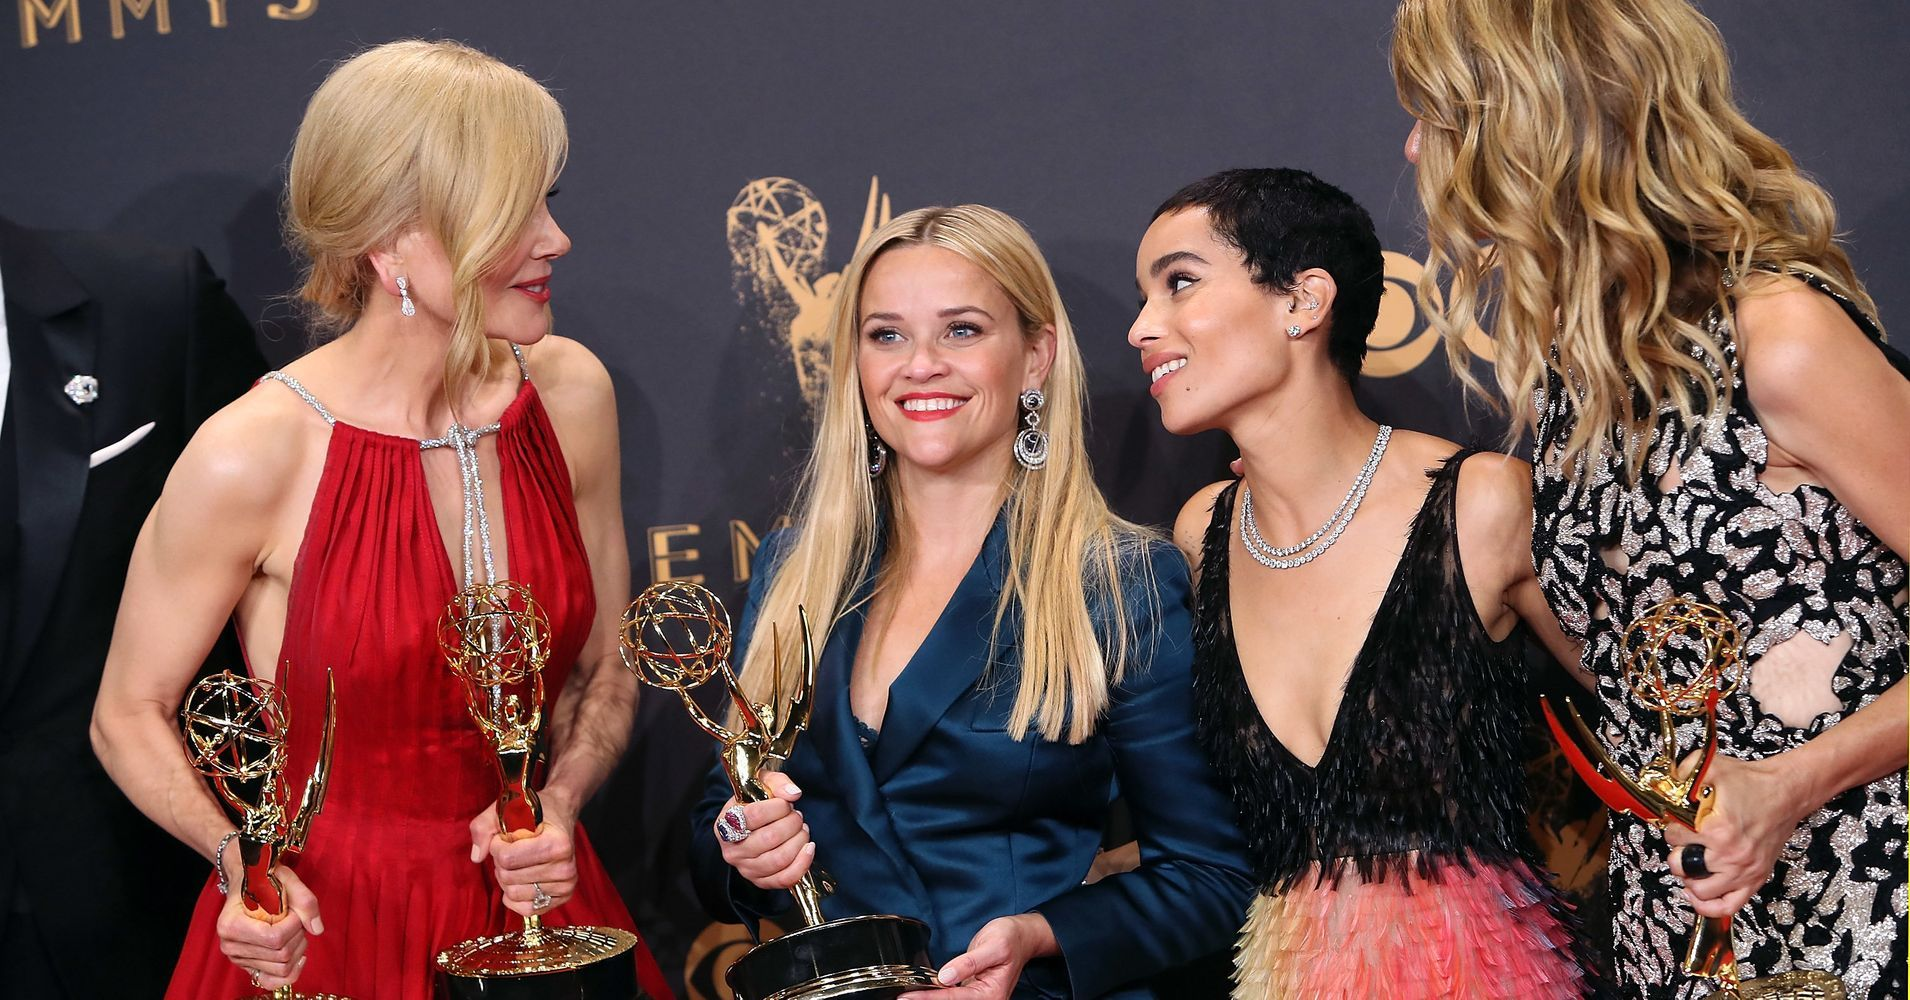 Women's Stories Won The Emmys In 2017 - HuffPost